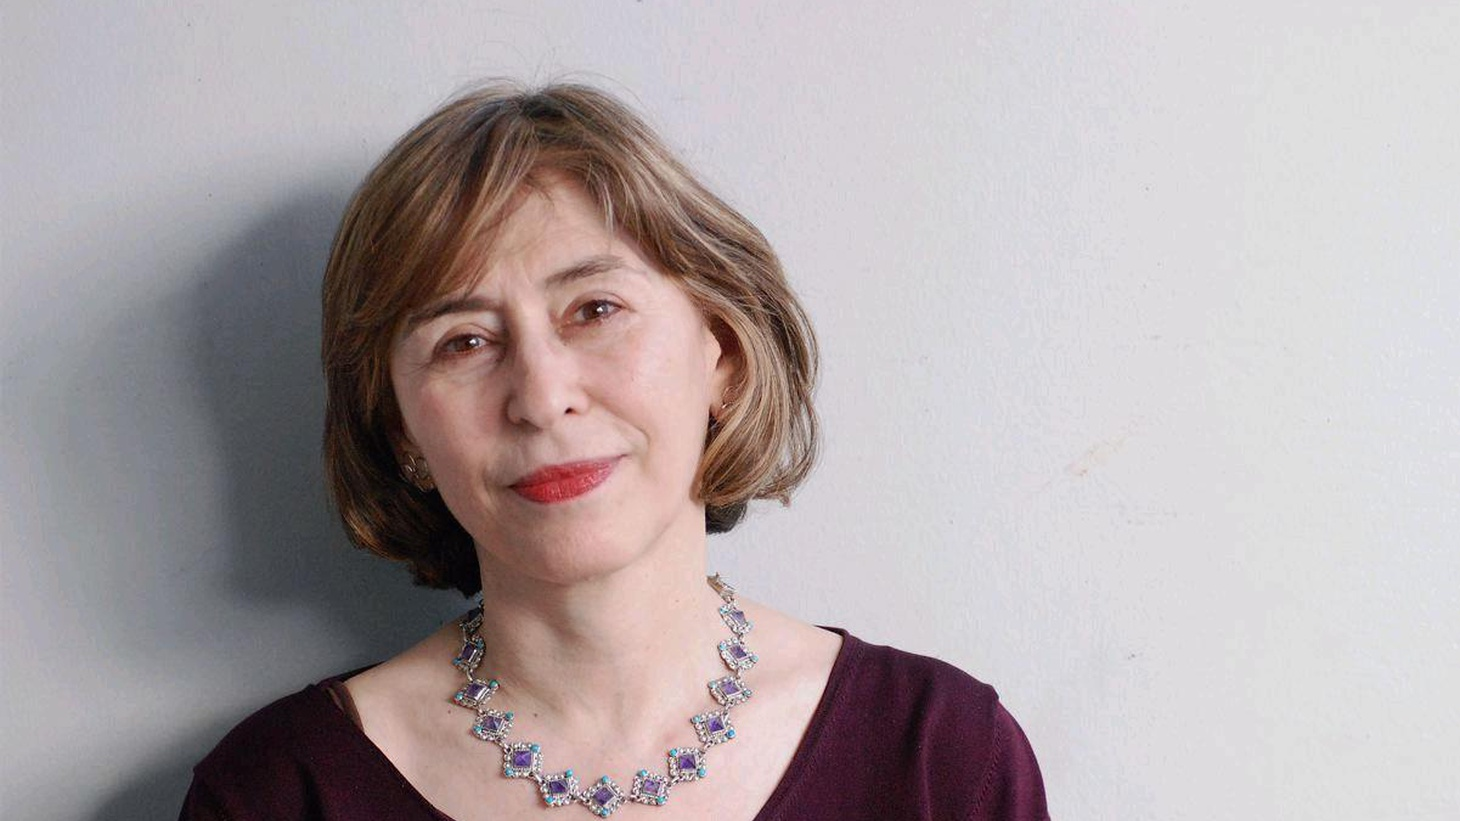 Things I've Been Silent About: Memories (Random House) Azar Nafisi is one of the most powerful advocates literature has. After writing Reading Lolita in Tehran, her memoir about reading forbidden books in a repressive culture, she has taken on a new source of repression—the family.